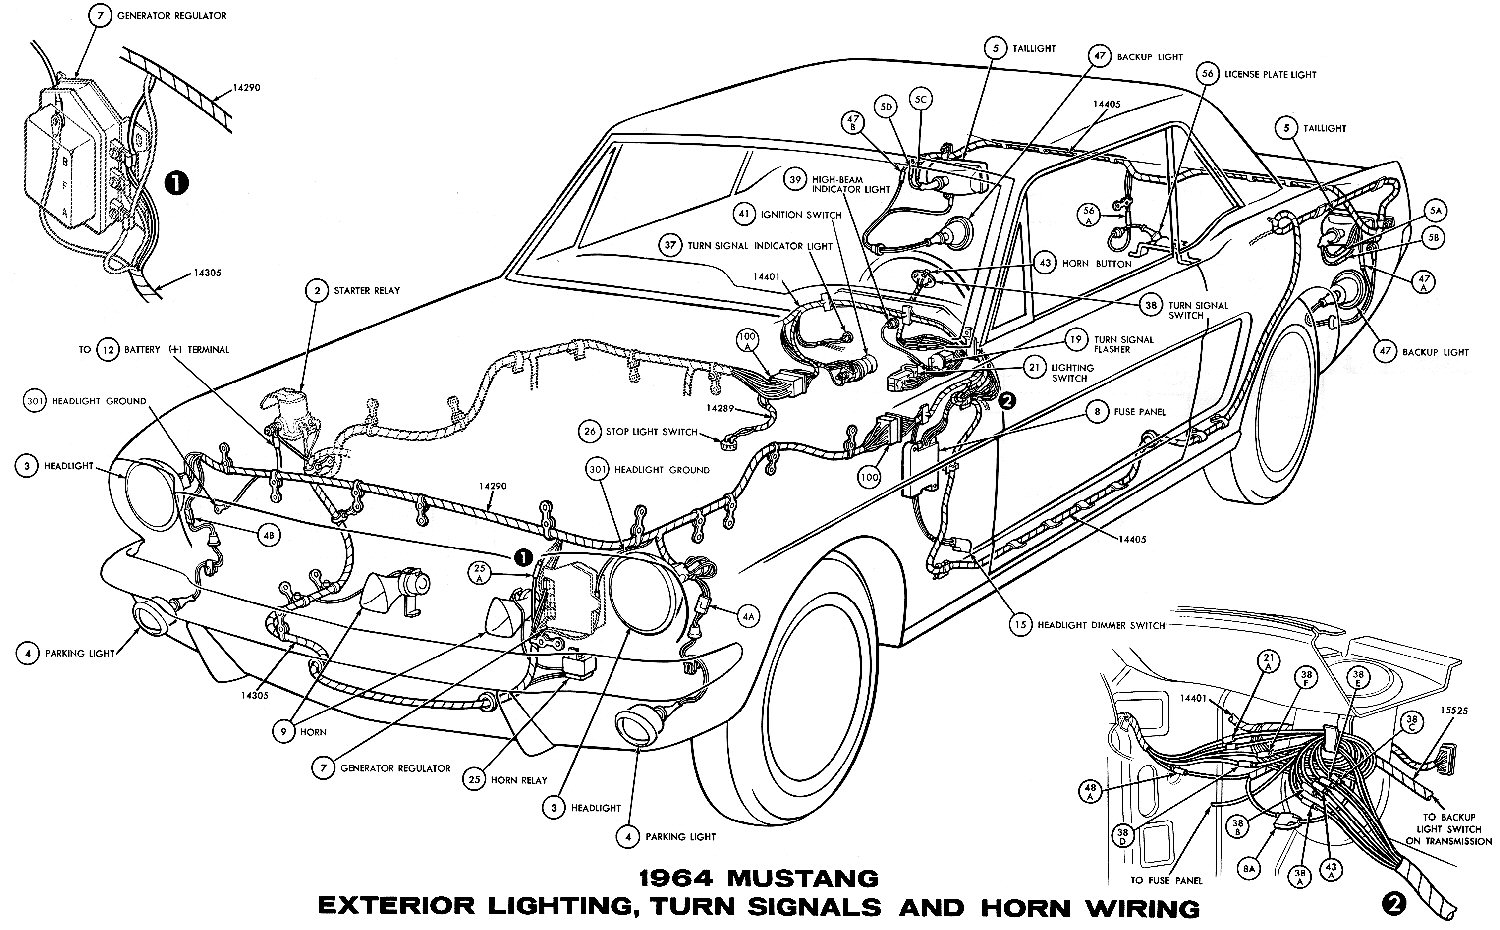 1967 Mustang Radio Wiring. Parts. Wiring Diagram Images